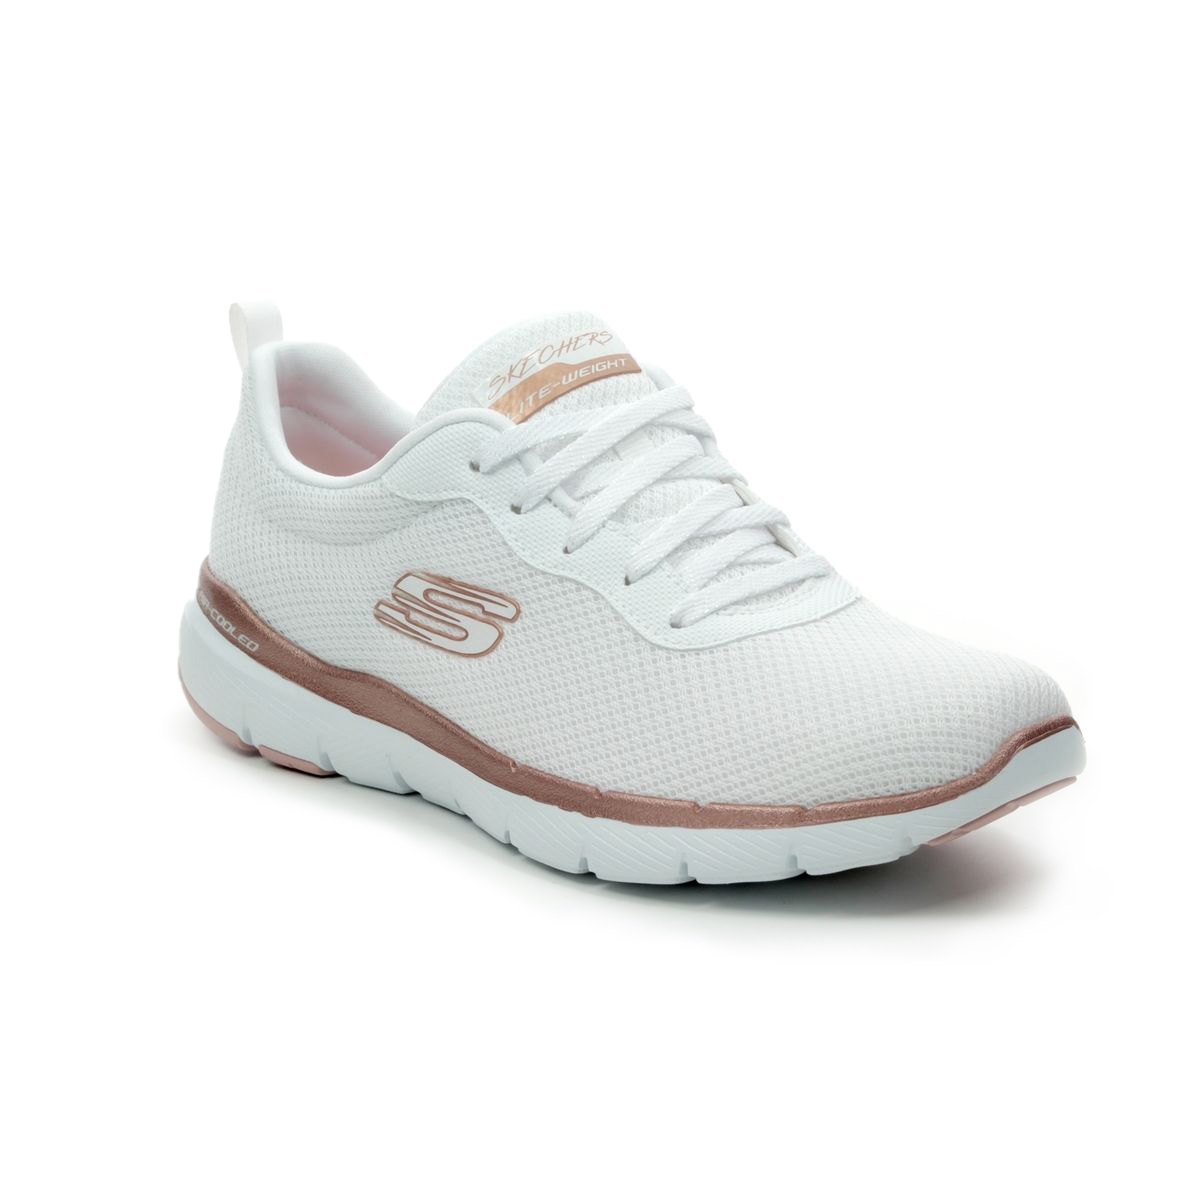 Skechers First Insight 13070 WTRG White